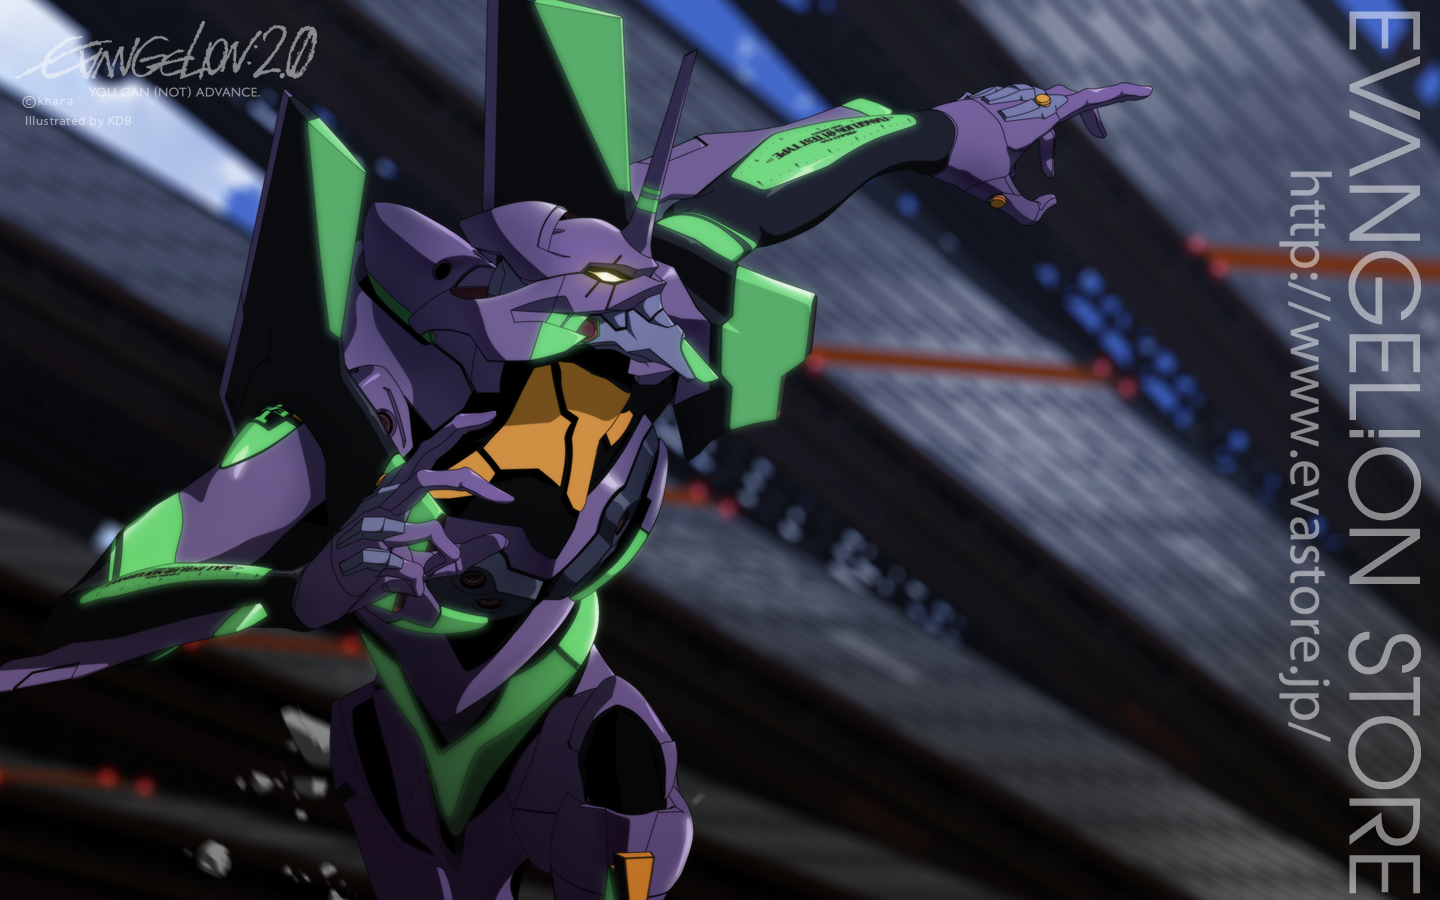 Eva Unit 01 Wallpaper